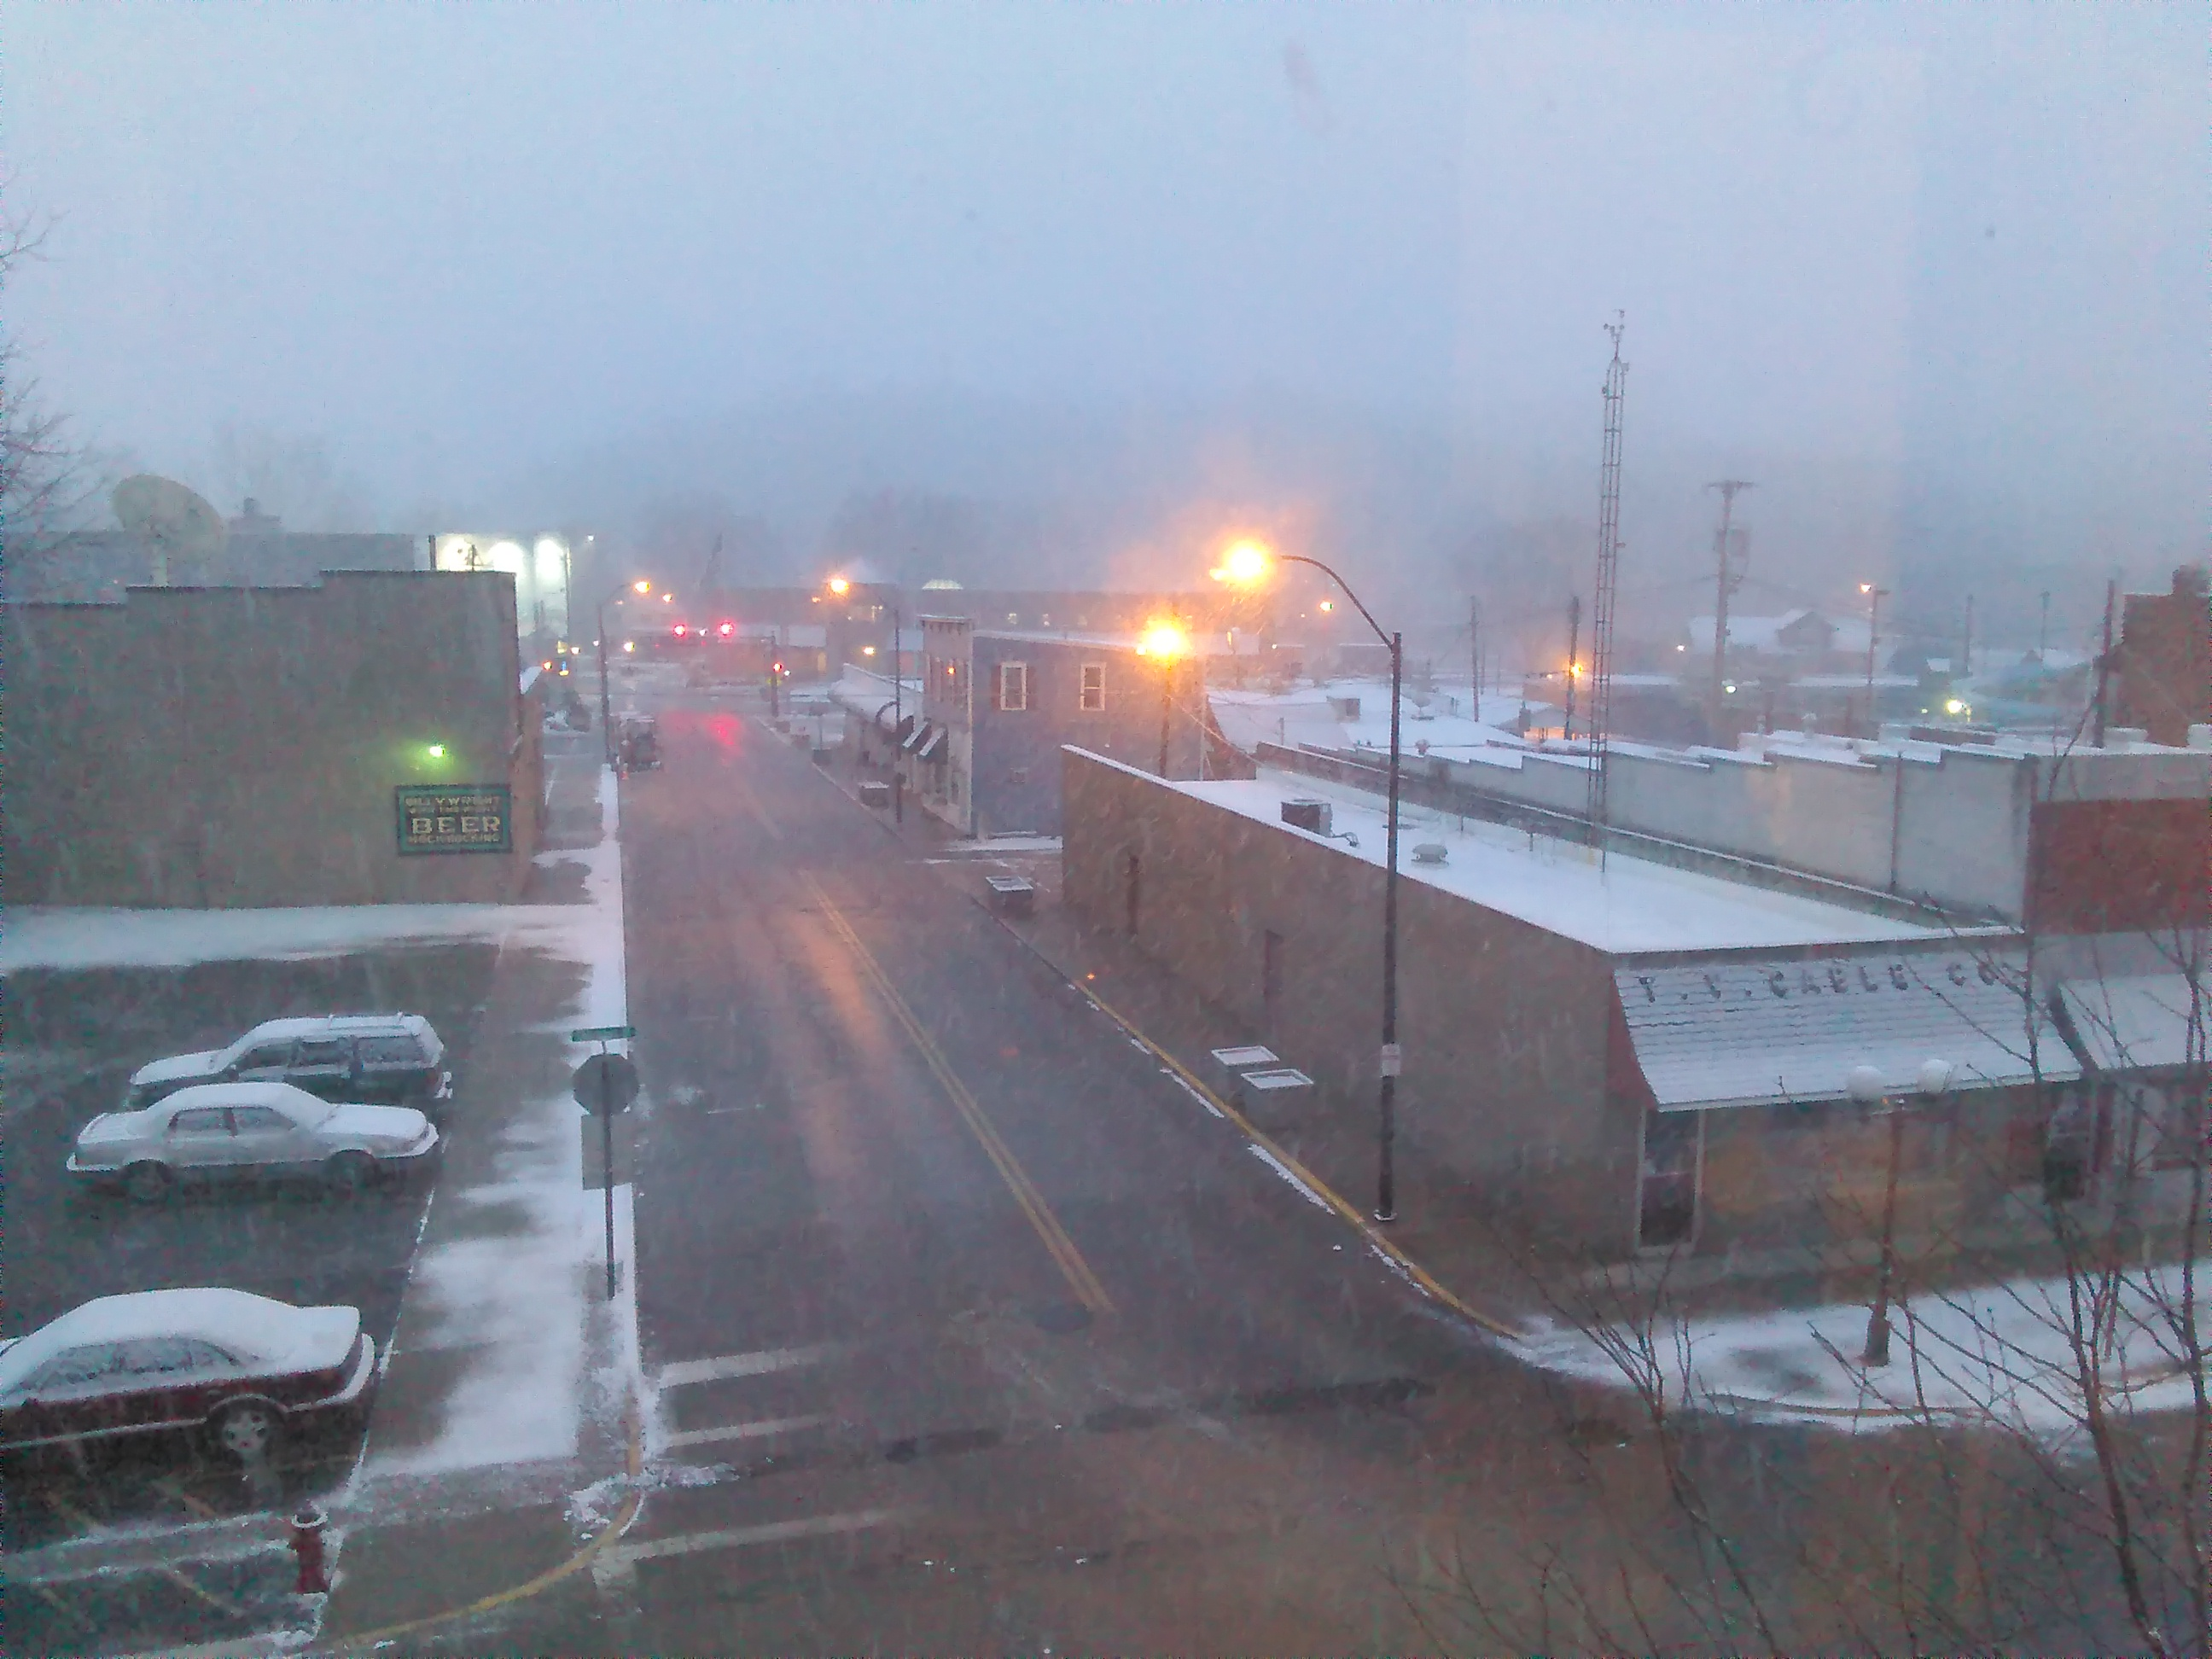 Nelsonville Snow 3-8-2018 6-52-04 AM